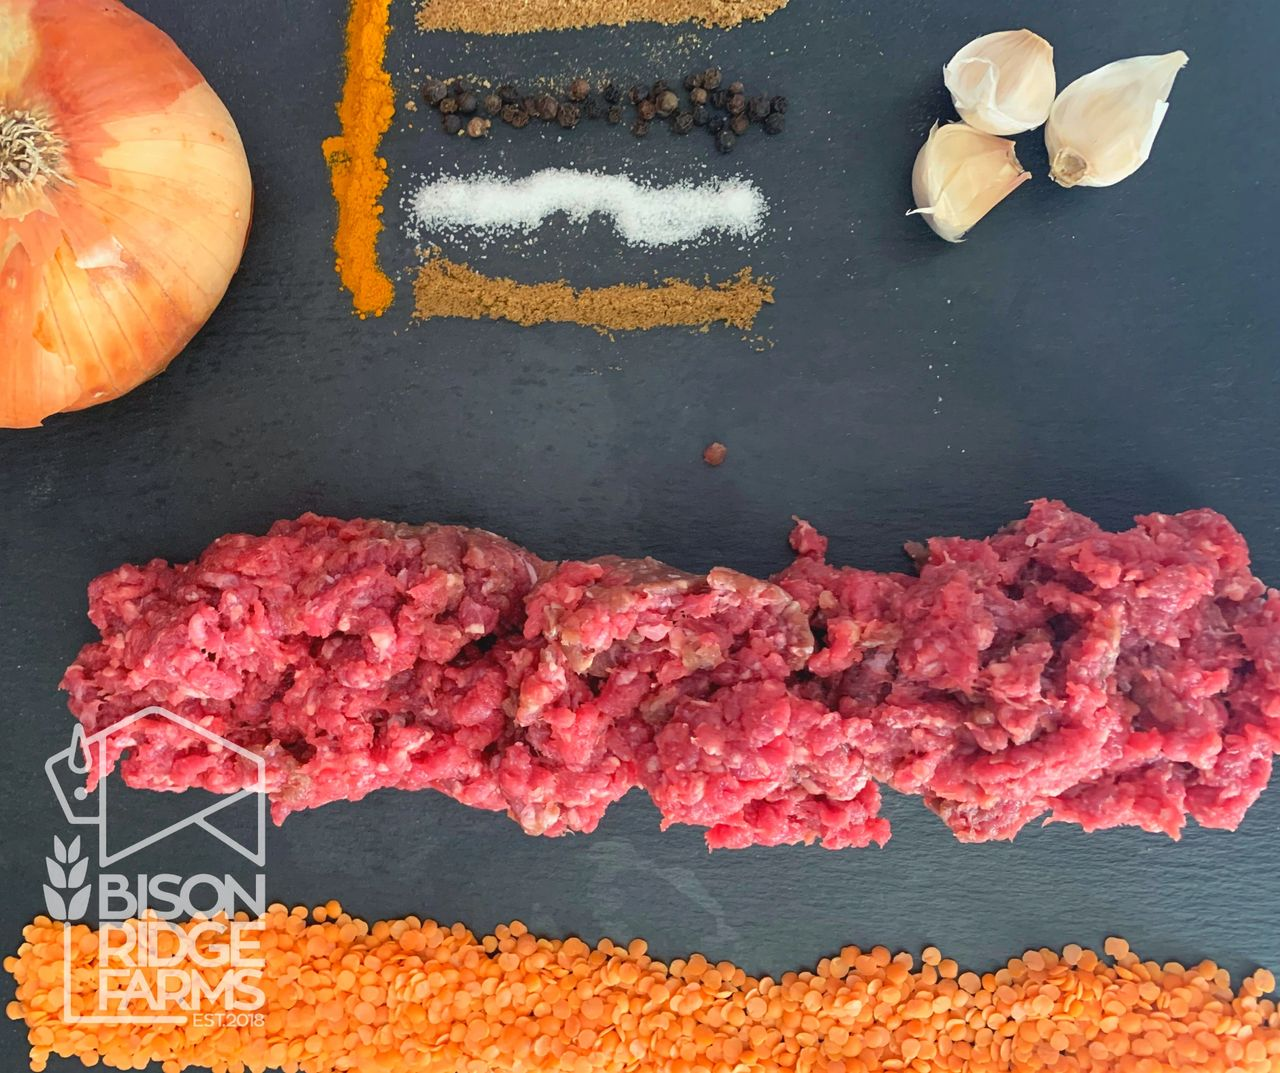 Ingredients to make red lentil soup with bison meatballs